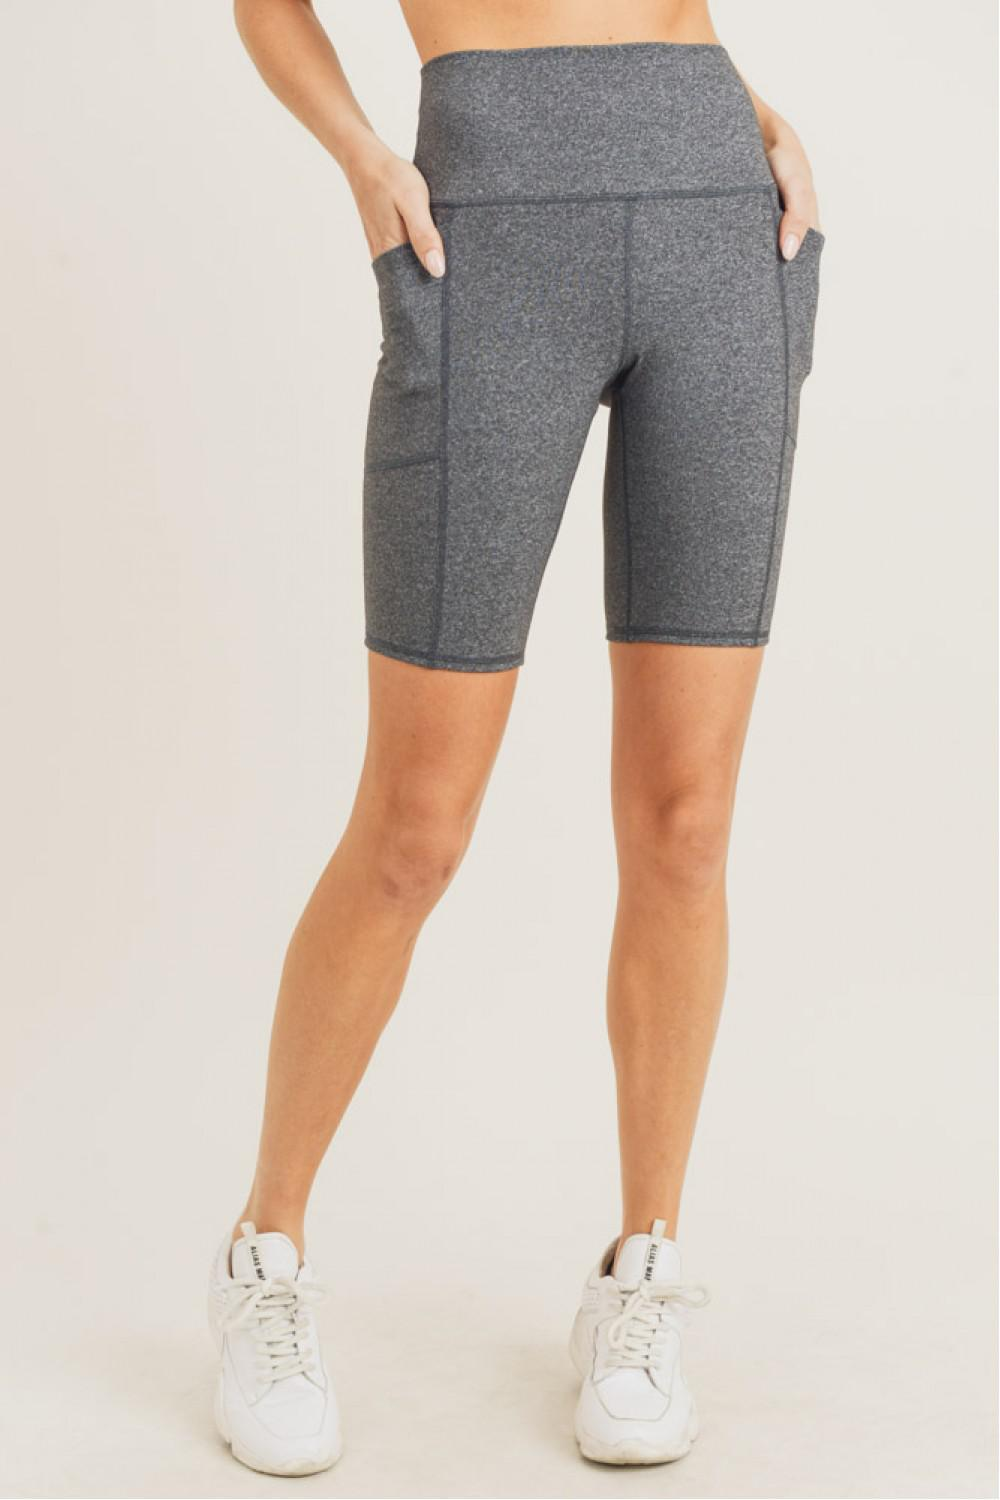 High Waisted Essential Bike Shorts - 13 Hub Lane   |